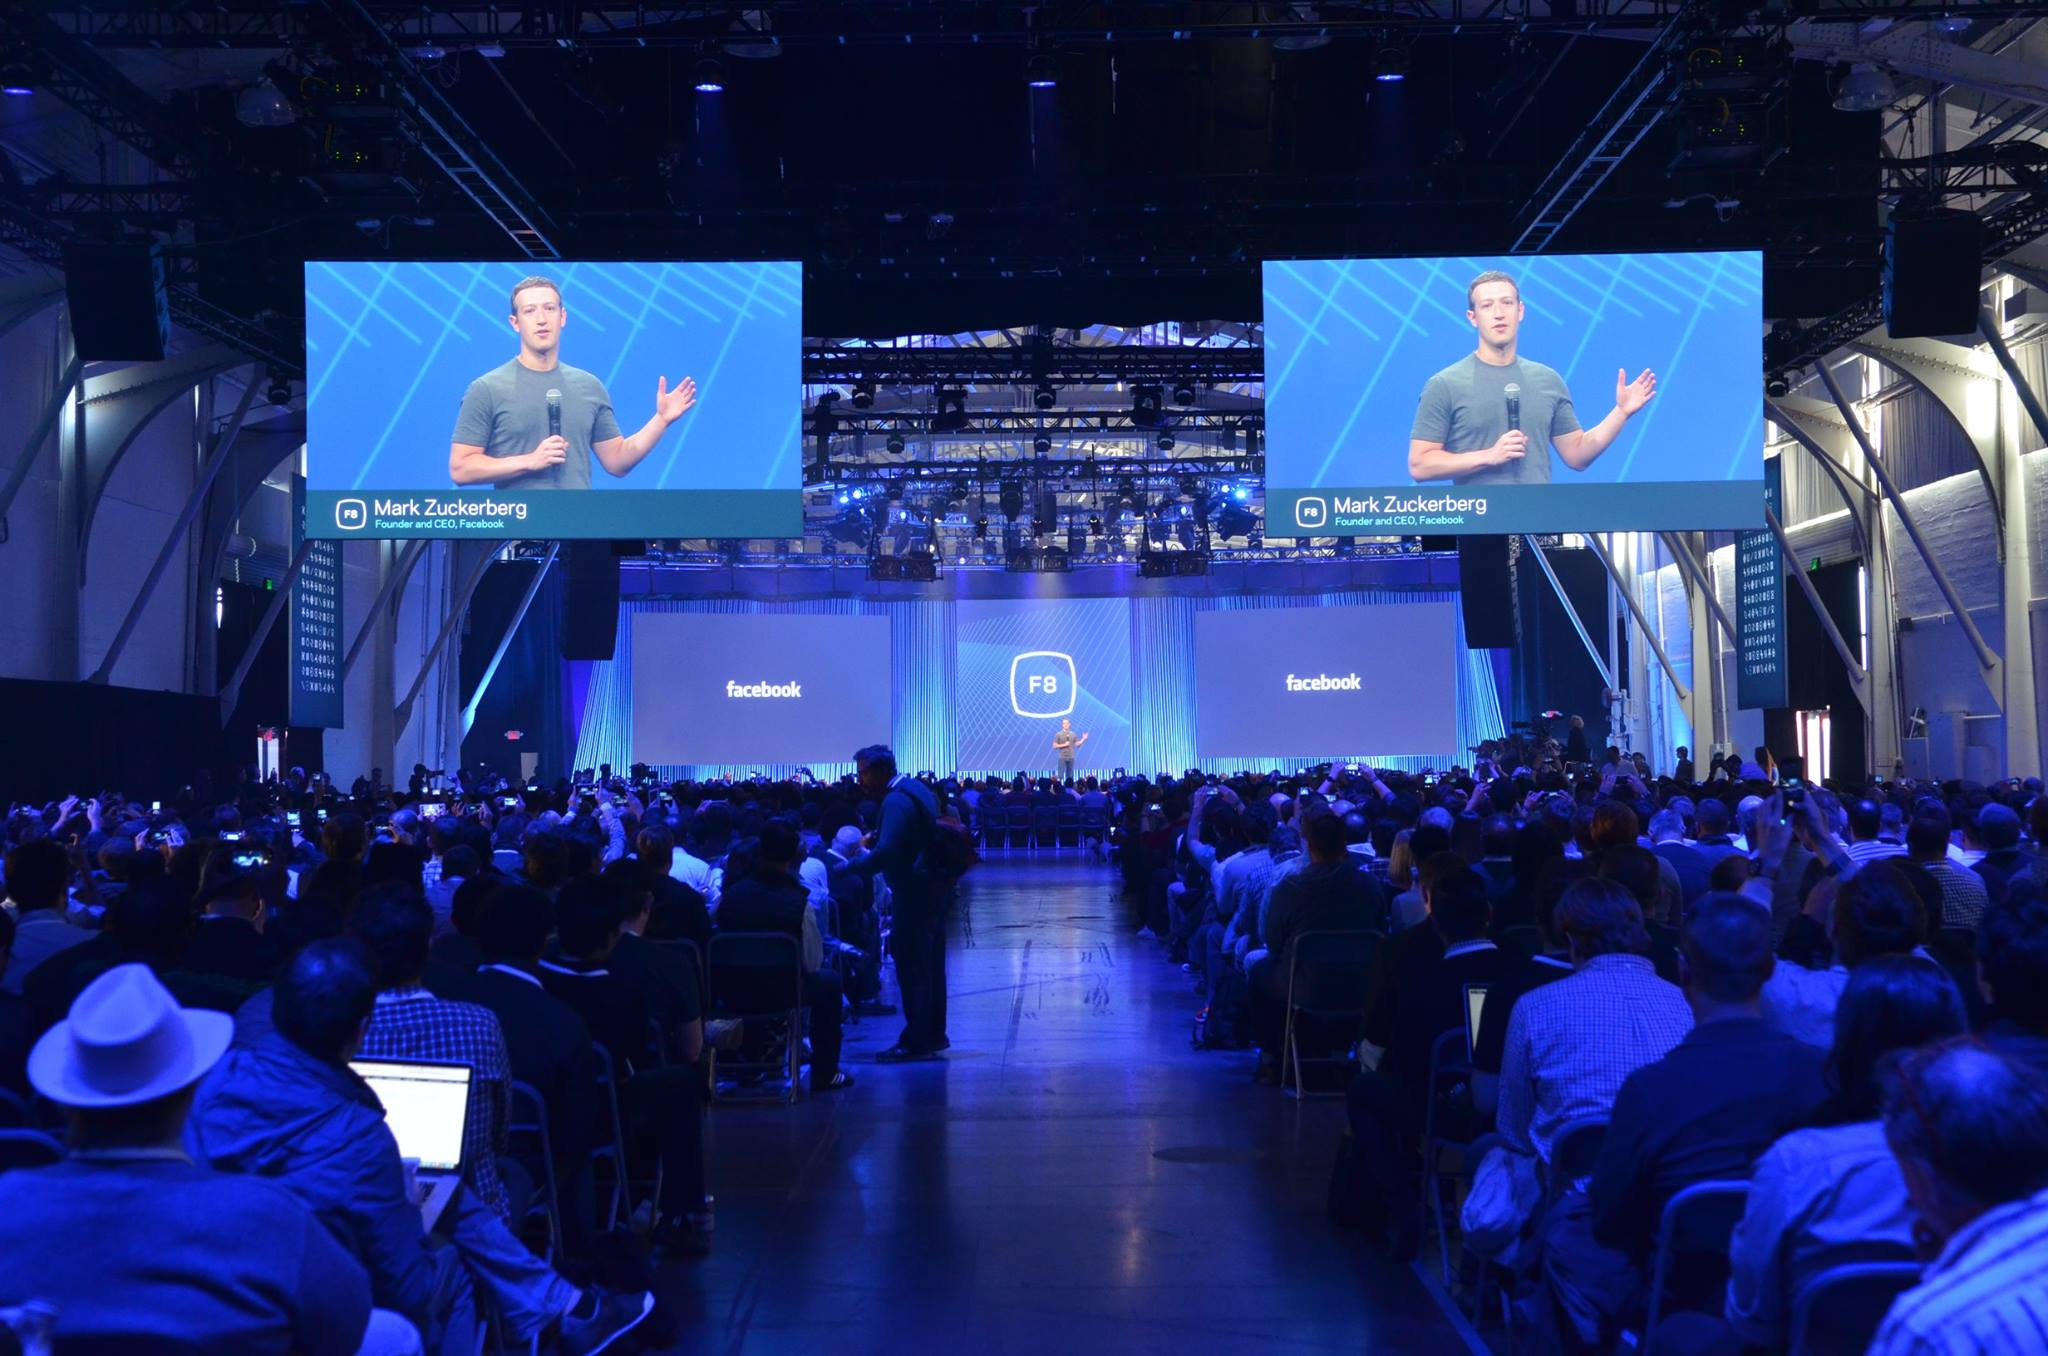 F8: Facebook Takes Aim at Google